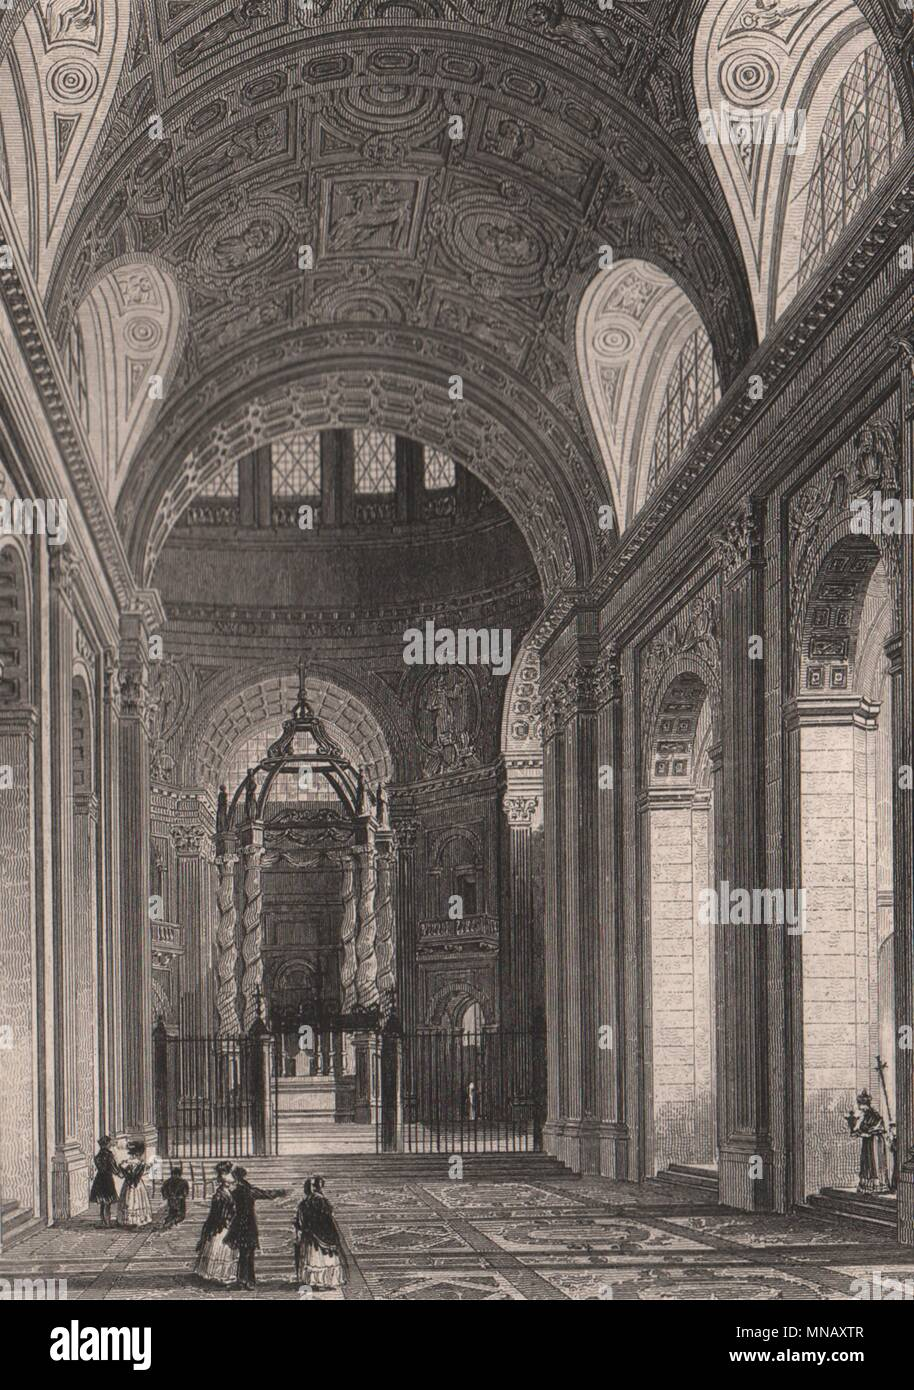 PARIS. Interieur de la Chapelle Val de Grace. BICKNELL 1845 alten, antiken Drucken Stockbild